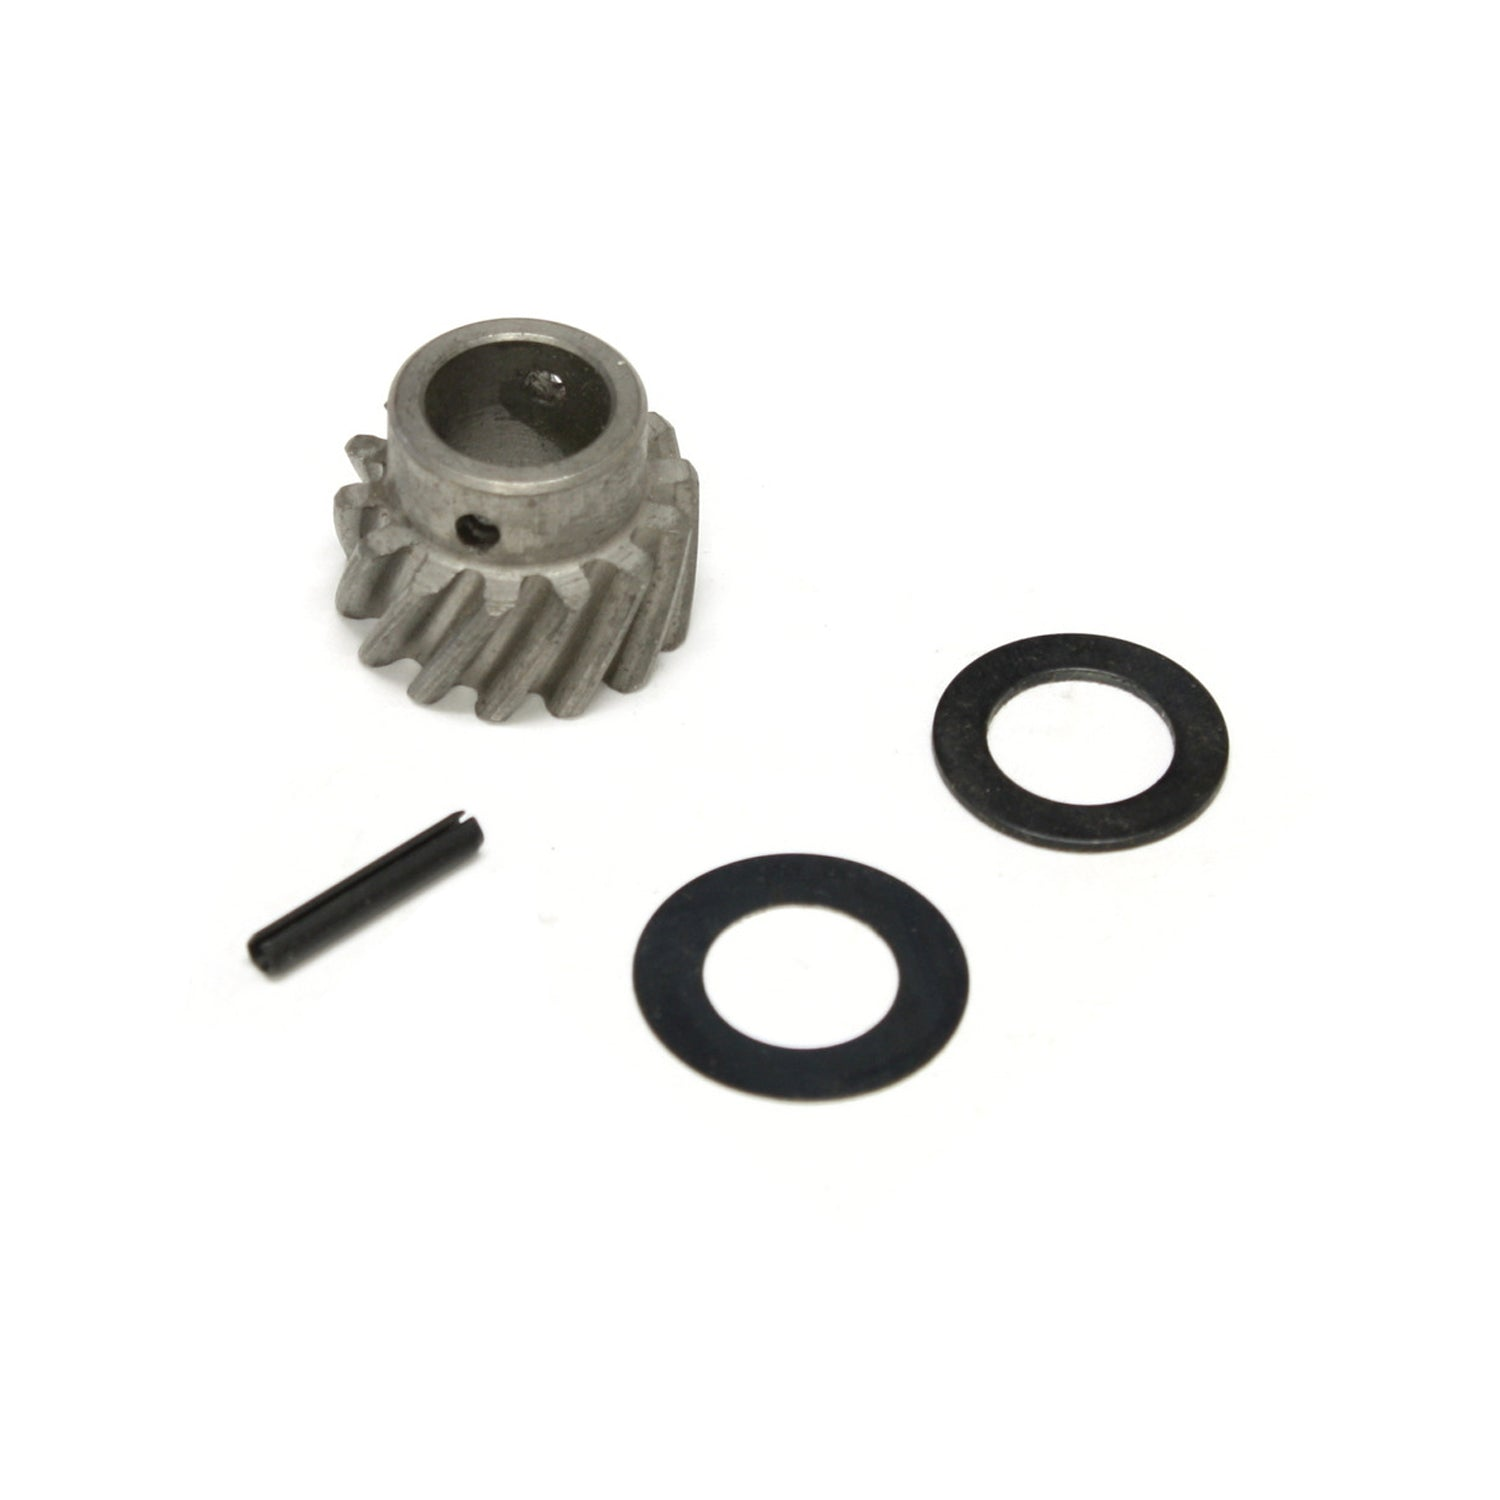 PerTronix 023-1003 Gear Kit for PerTronix Industrial Electronic Distributor